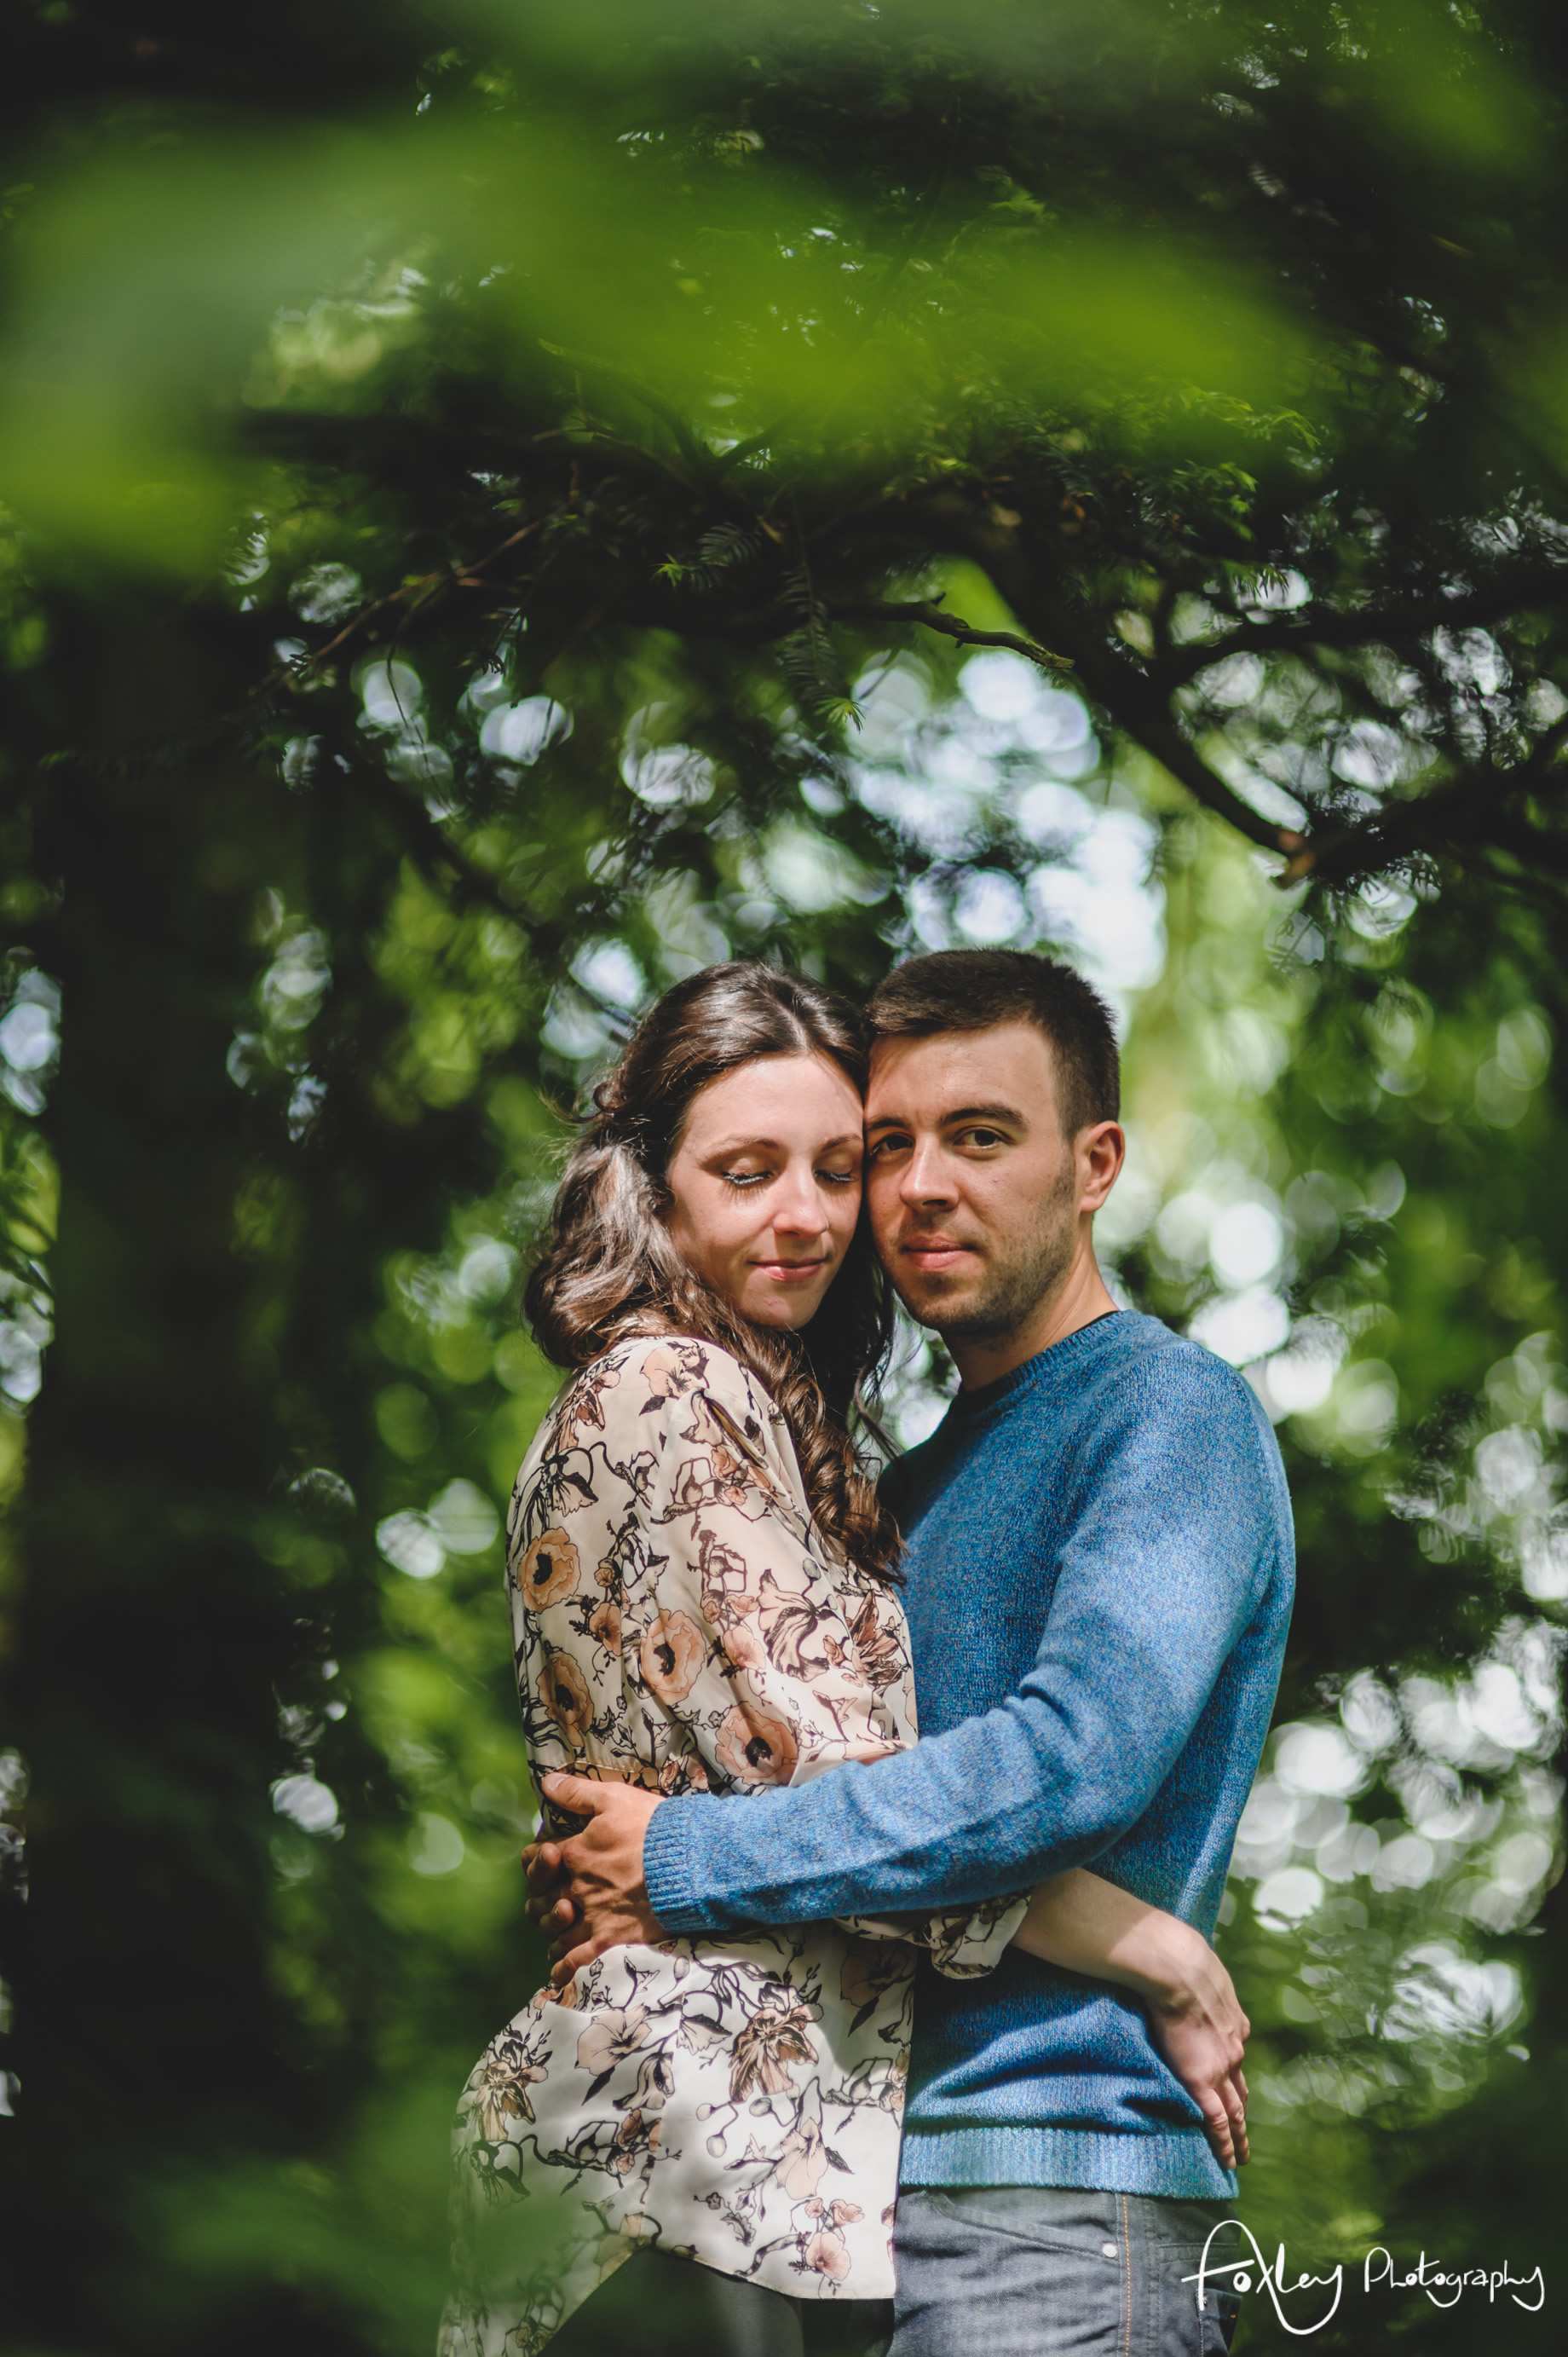 Rebecca-and-Dan-Pre-Wedding-Shoot-at-Preston-Guild-Wheel-028